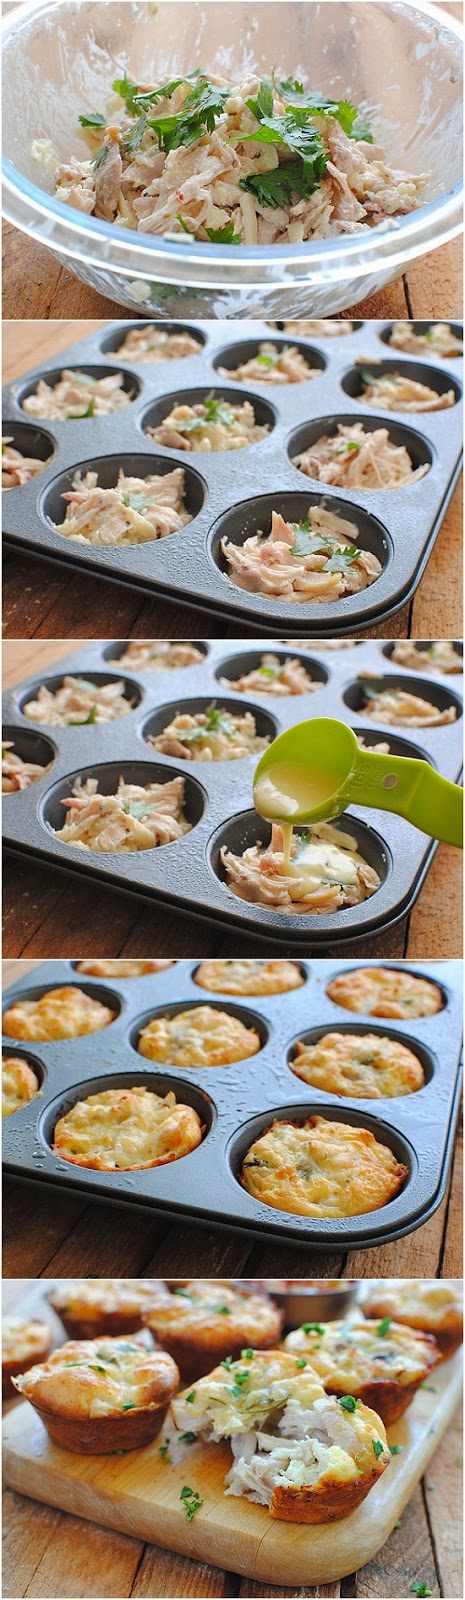 Mini-Tex-Mex-Chicken-and-Cheese-Pies